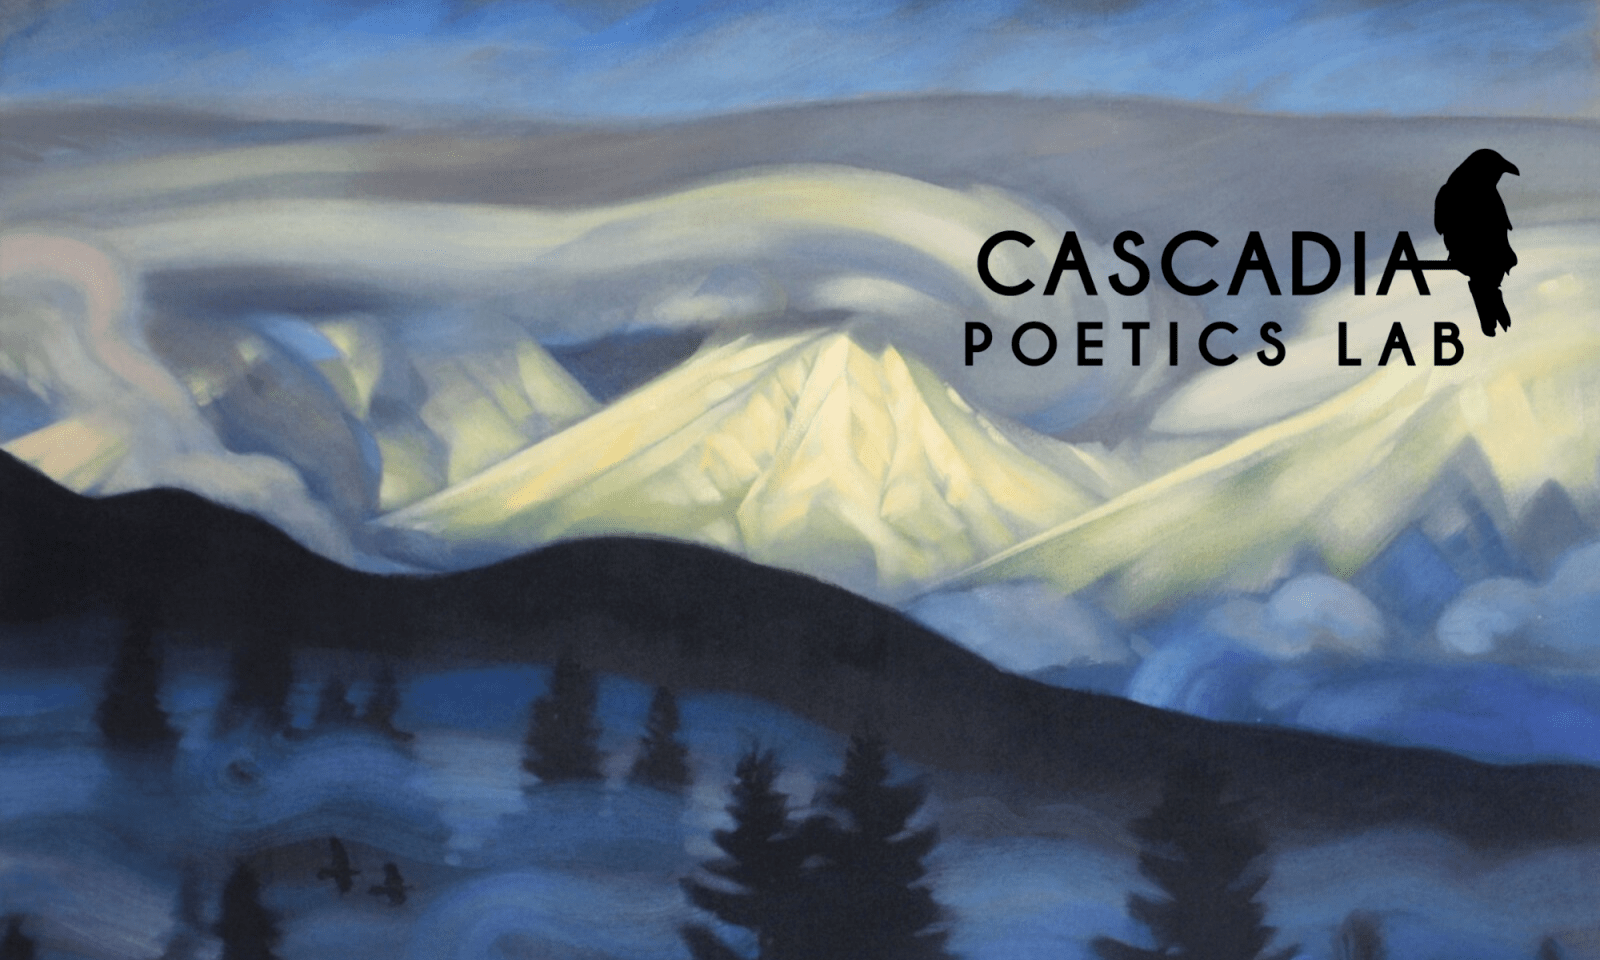 Cascadia Poetics LAB